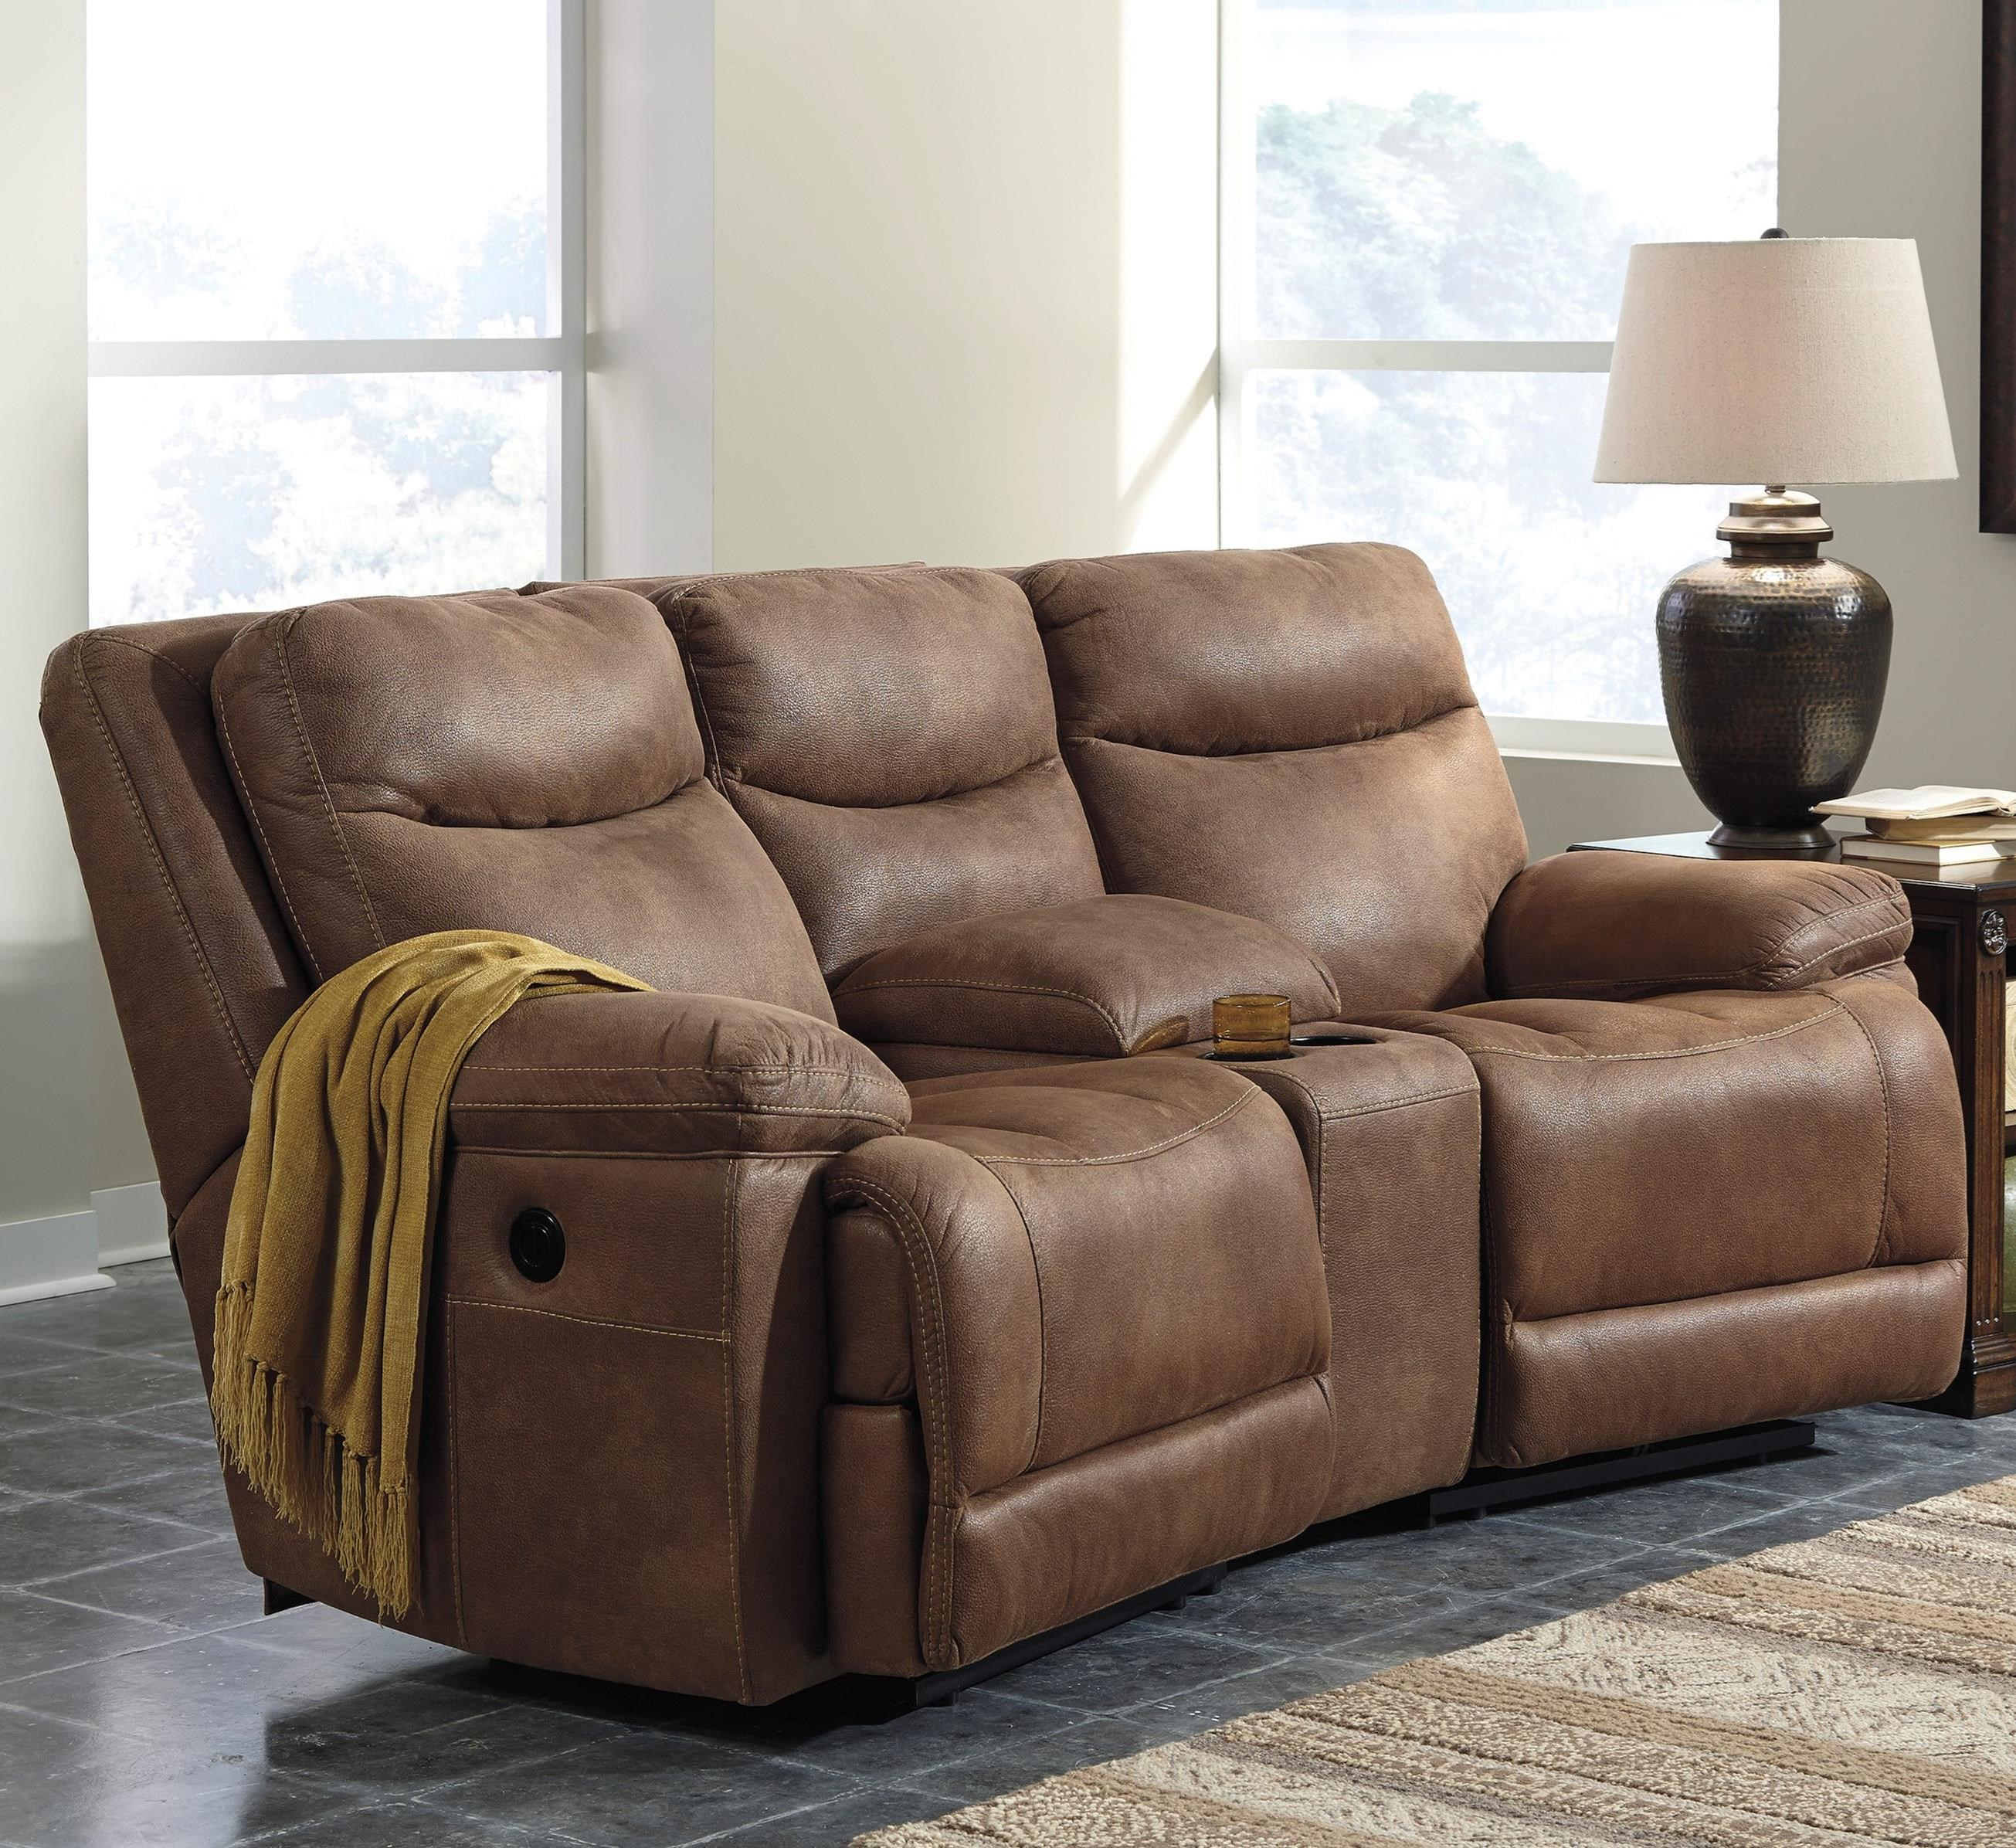 Reclining sofa with console 2 seat reclining sofa with console dual reclining sofa with - Sofa reclinable ...